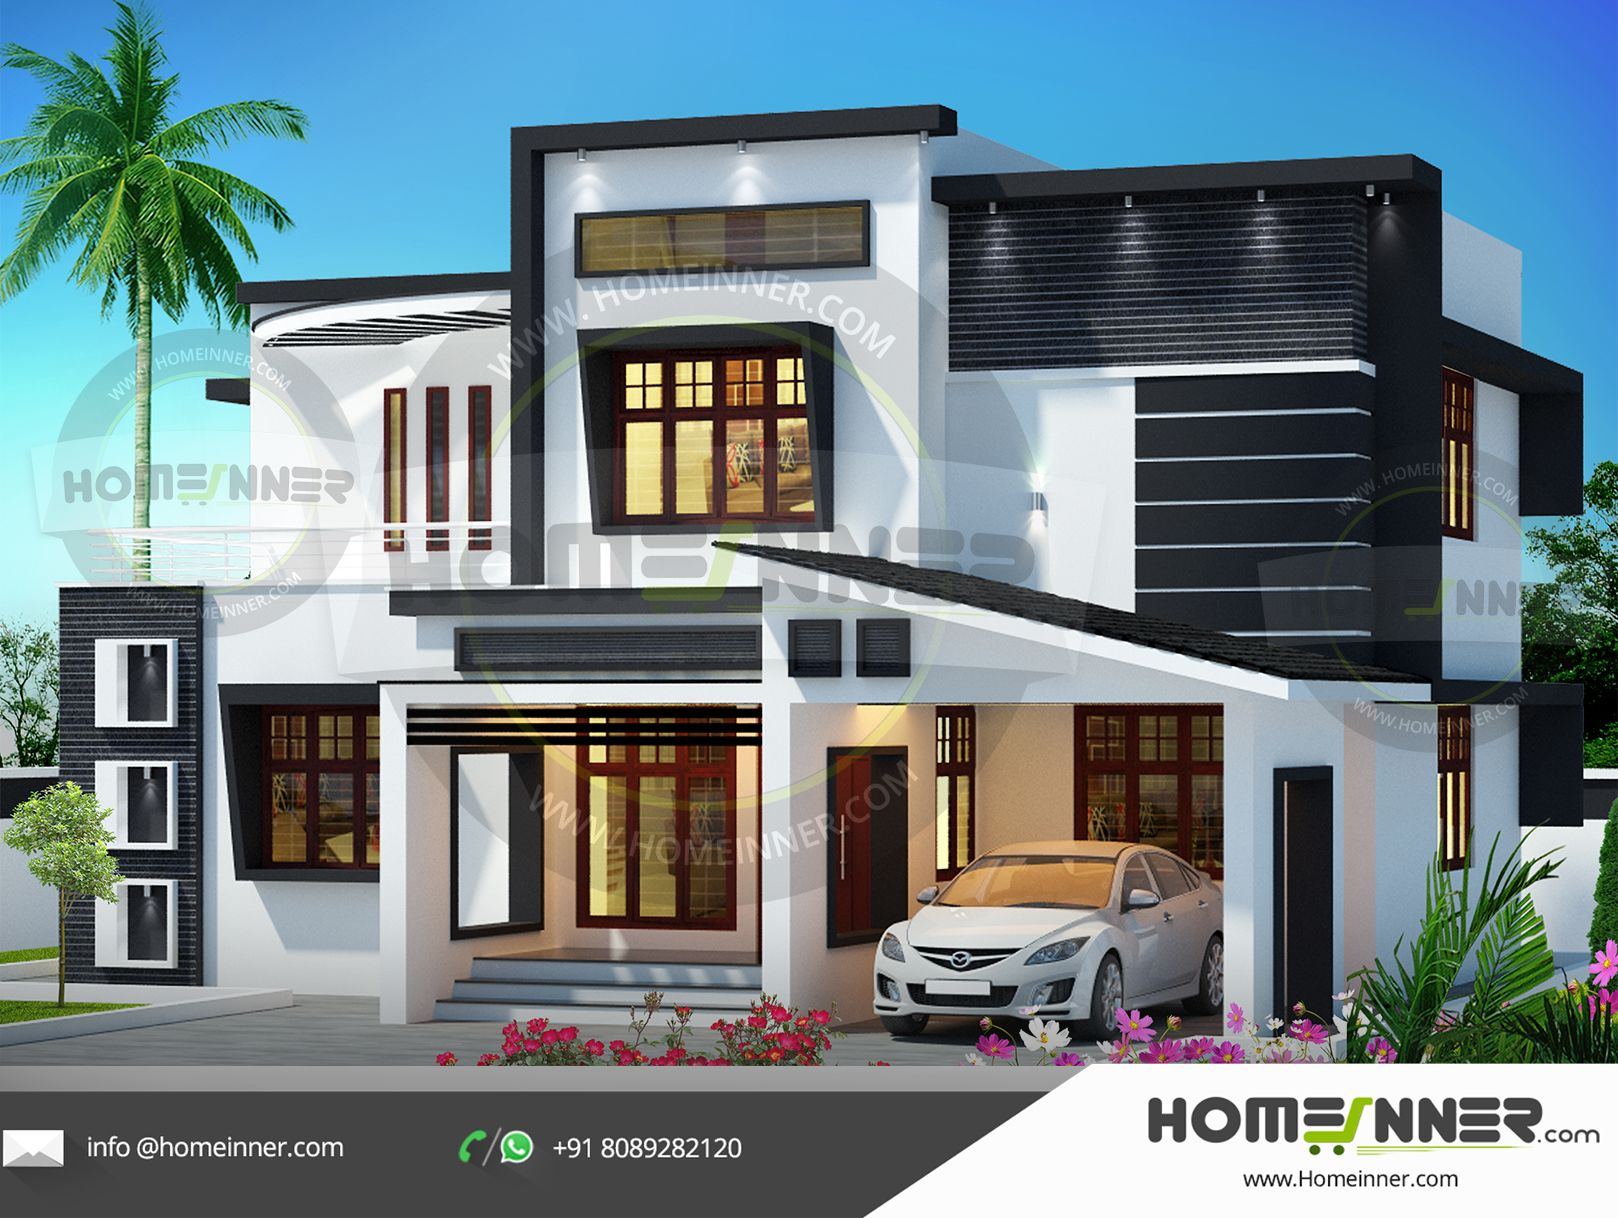 Hind 11057 Room Amenities Kerala House Design Model House Plan Free House Plans